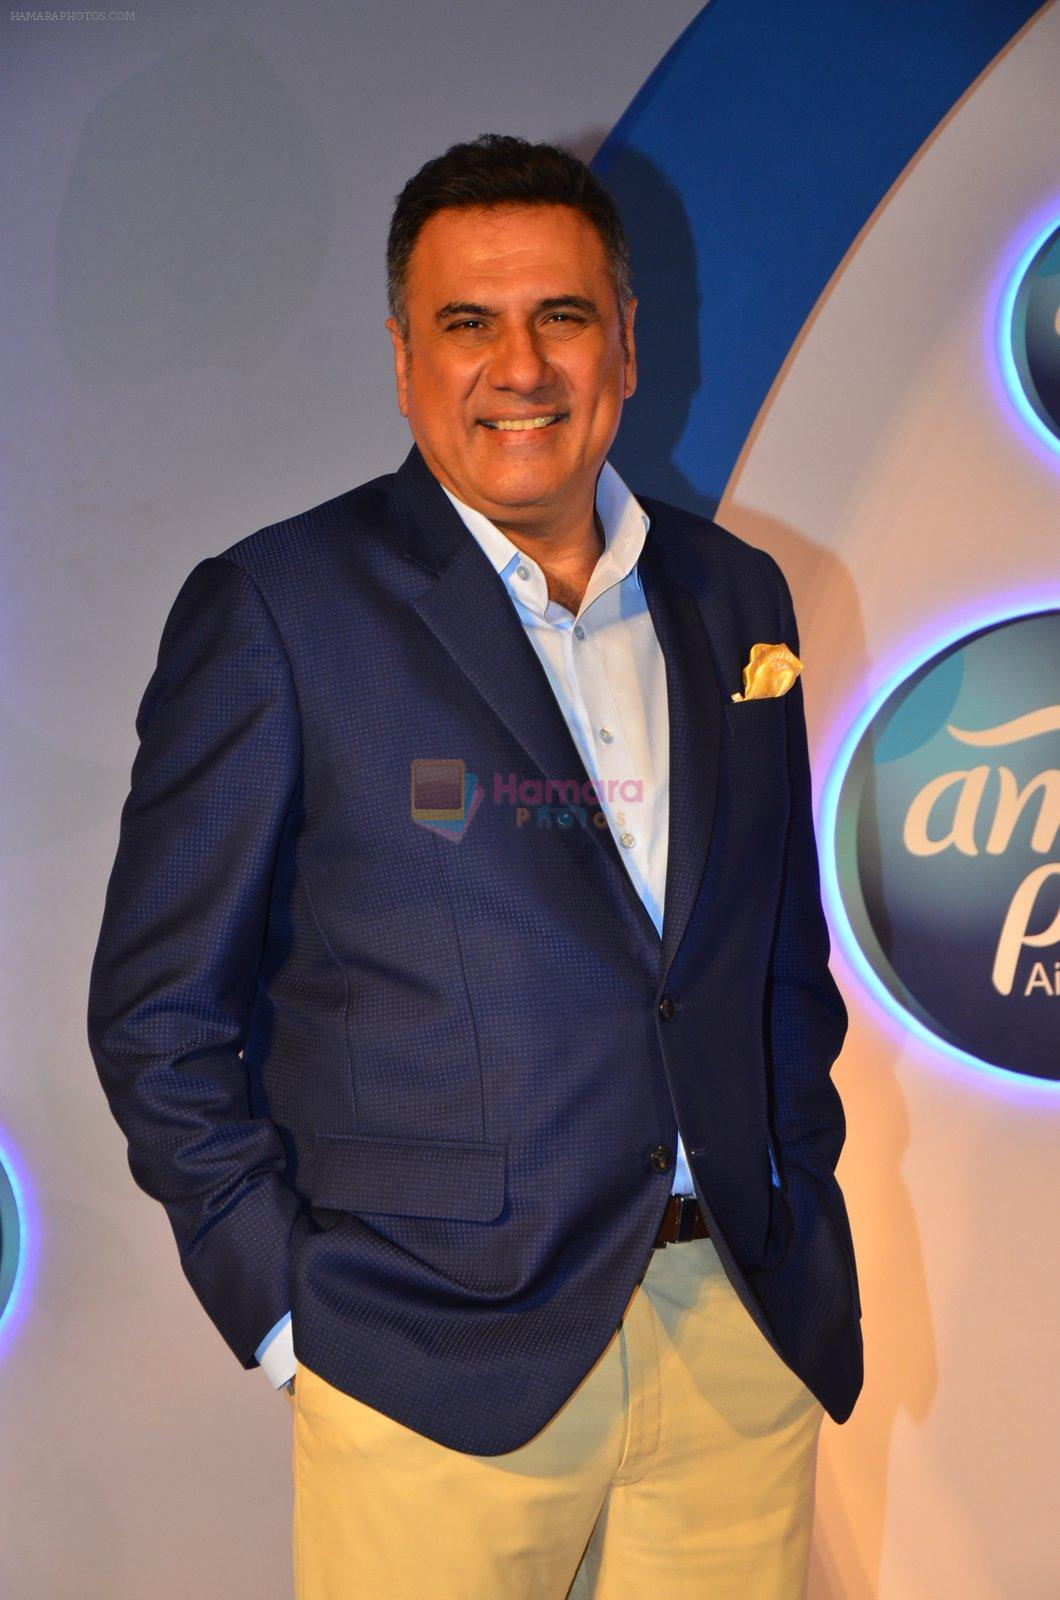 Boman Irani during a promotional event by Ambi Pur in Mumbai on 13th Sept 2016